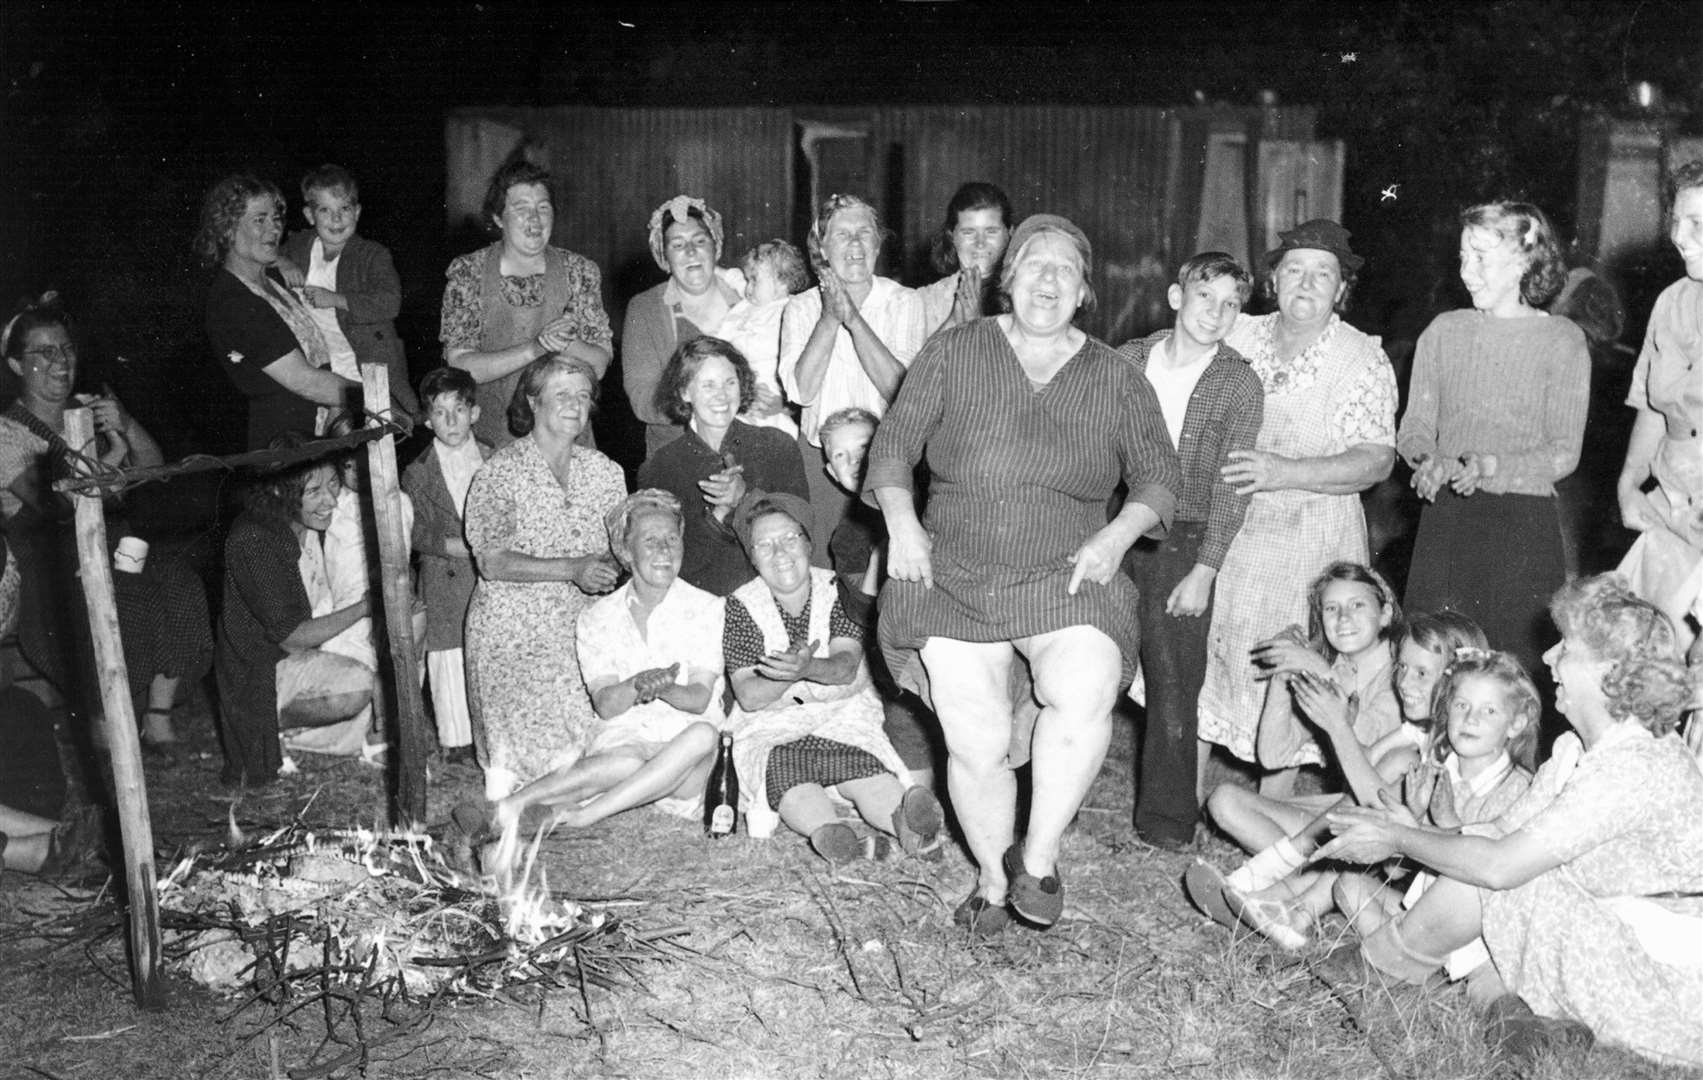 Hop picking camp at Biddenden in 1949. Picture: Countrywide Photographic